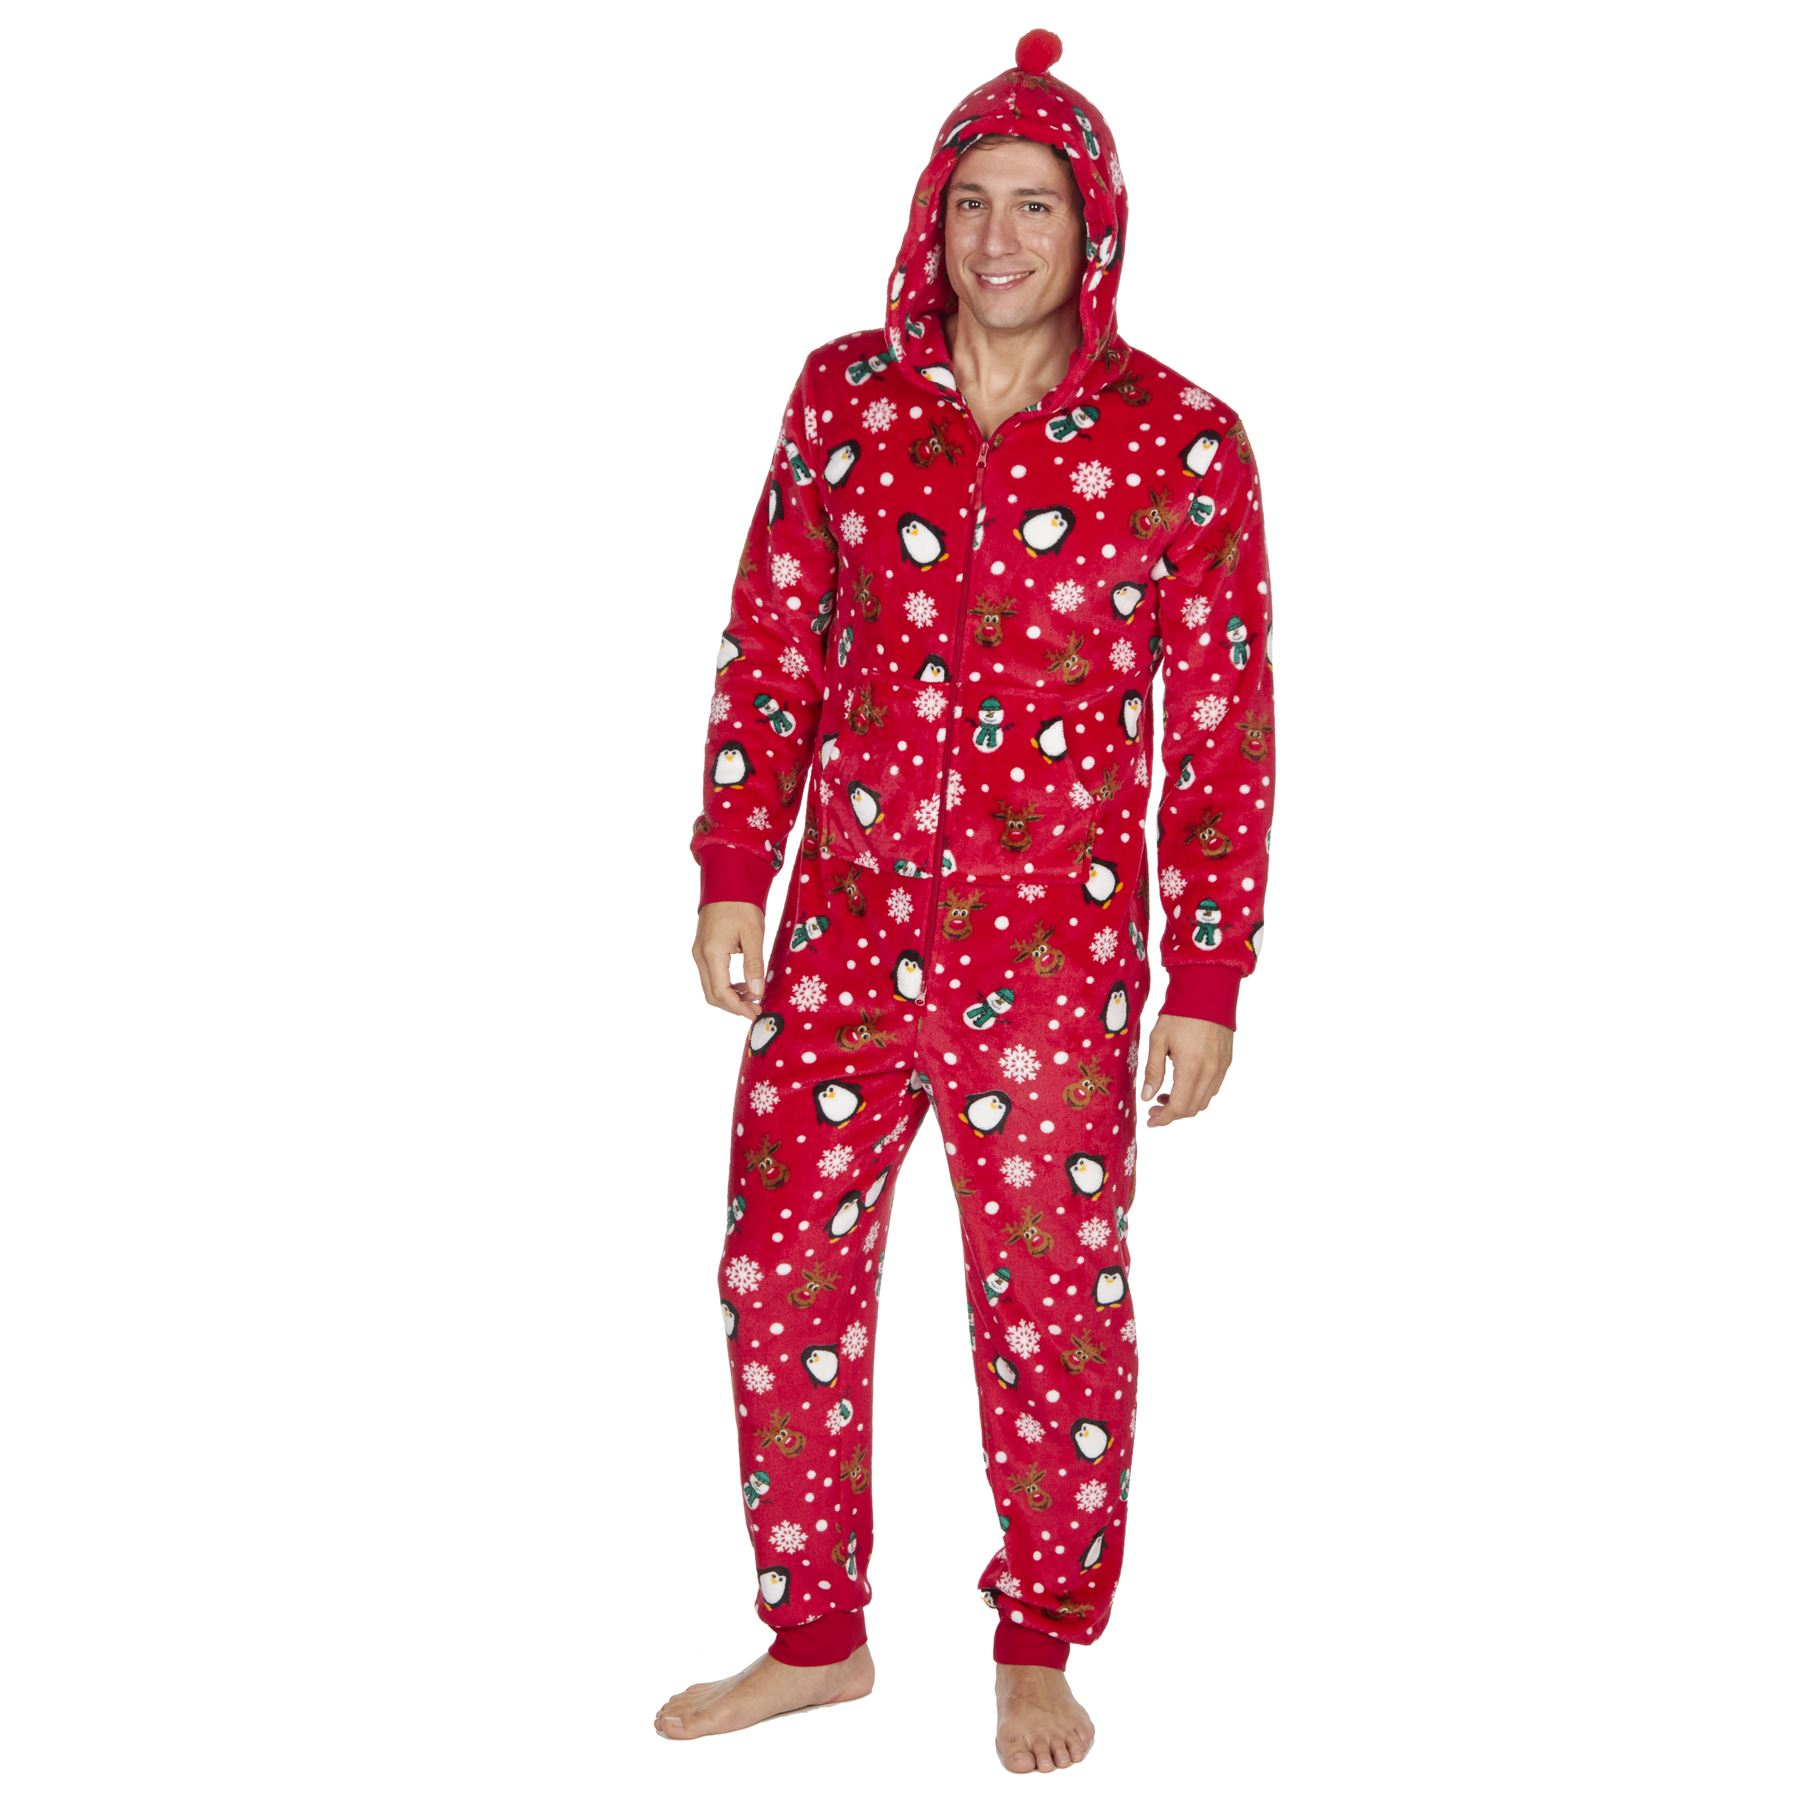 Ladies-Womens-Girls-Fleece-All-In-One-Pyjamas-Outfit-Jumpsuit-Costume-Size-6-18 thumbnail 57